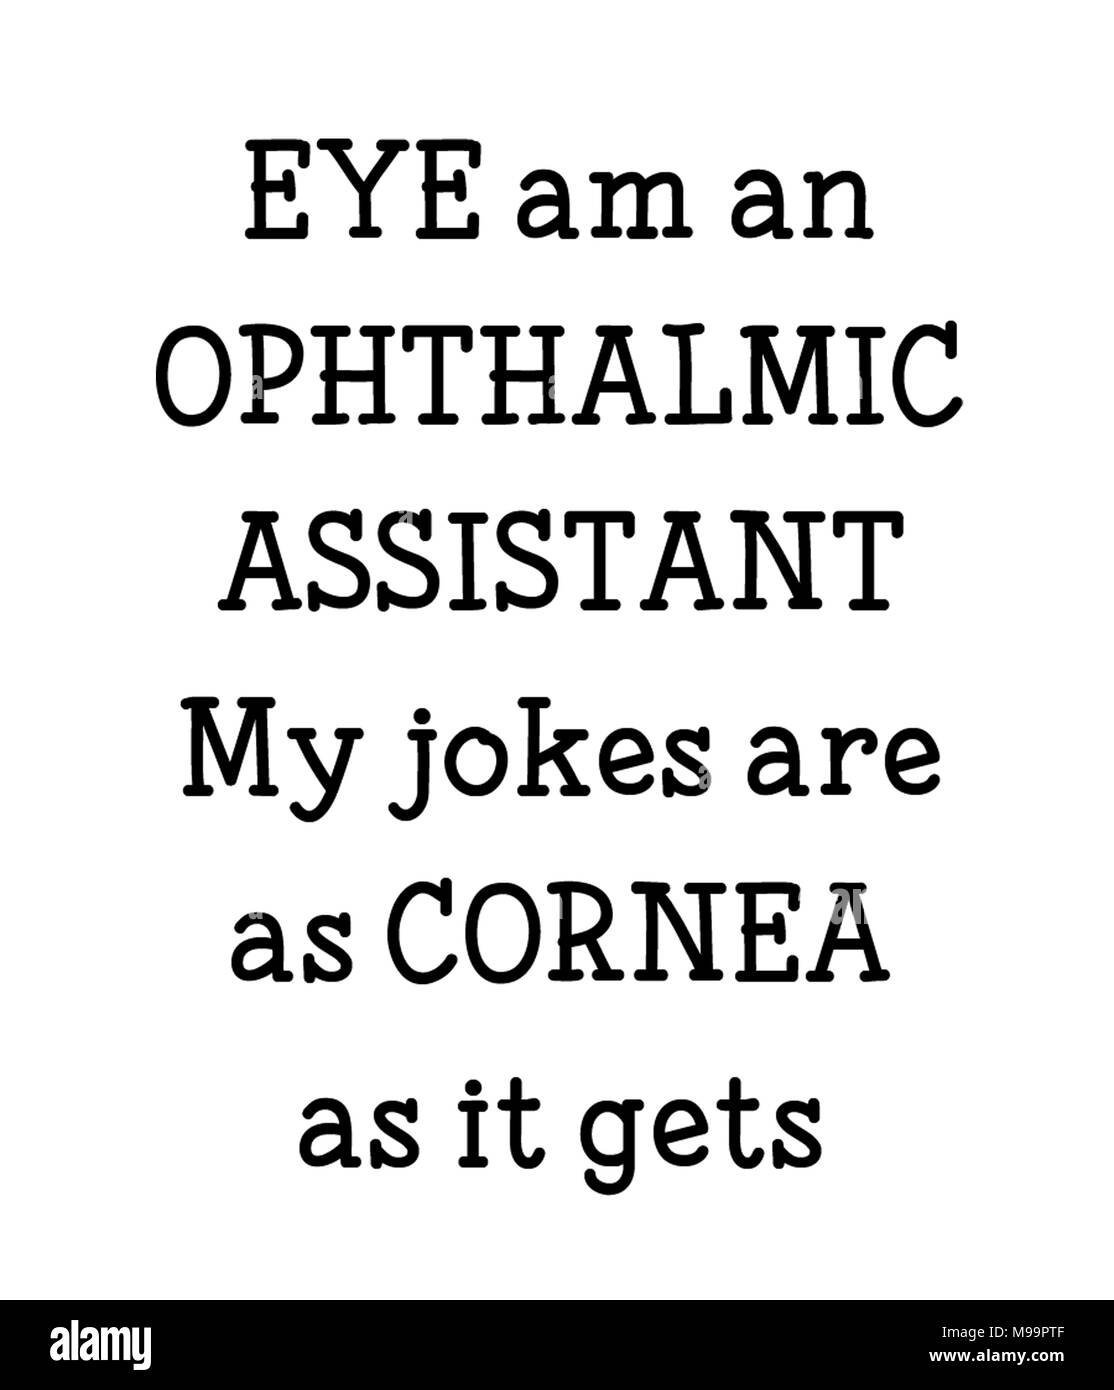 EYE am an OPHTHALMIC ASSISTANT My jokes are as CORNEA as it gets - Stock Image